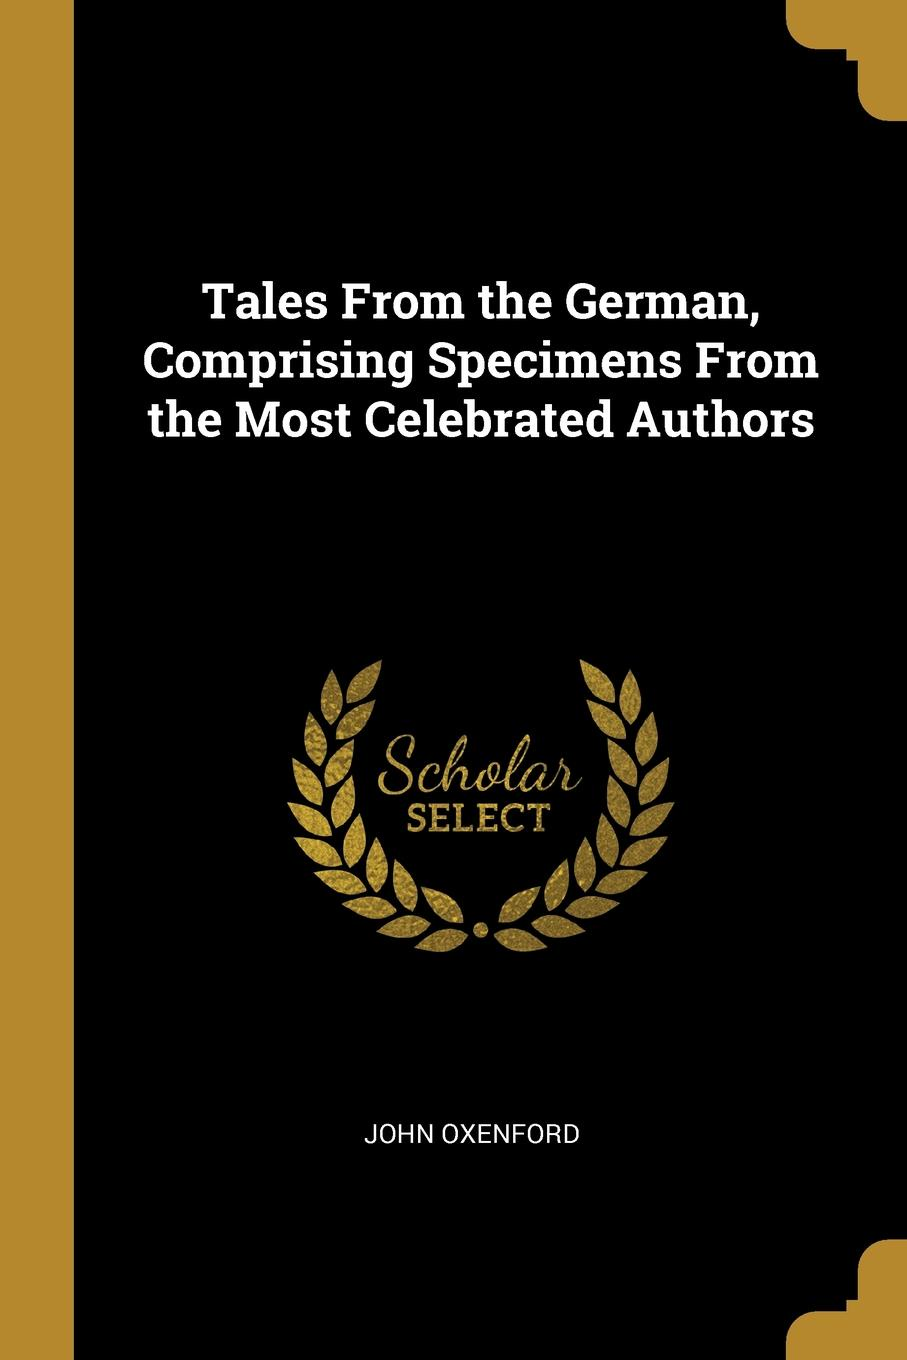 John Oxenford Tales From the German, Comprising Specimens From the Most Celebrated Authors коллектив авторов tales from the german comprising specimens from the most celebrated authors